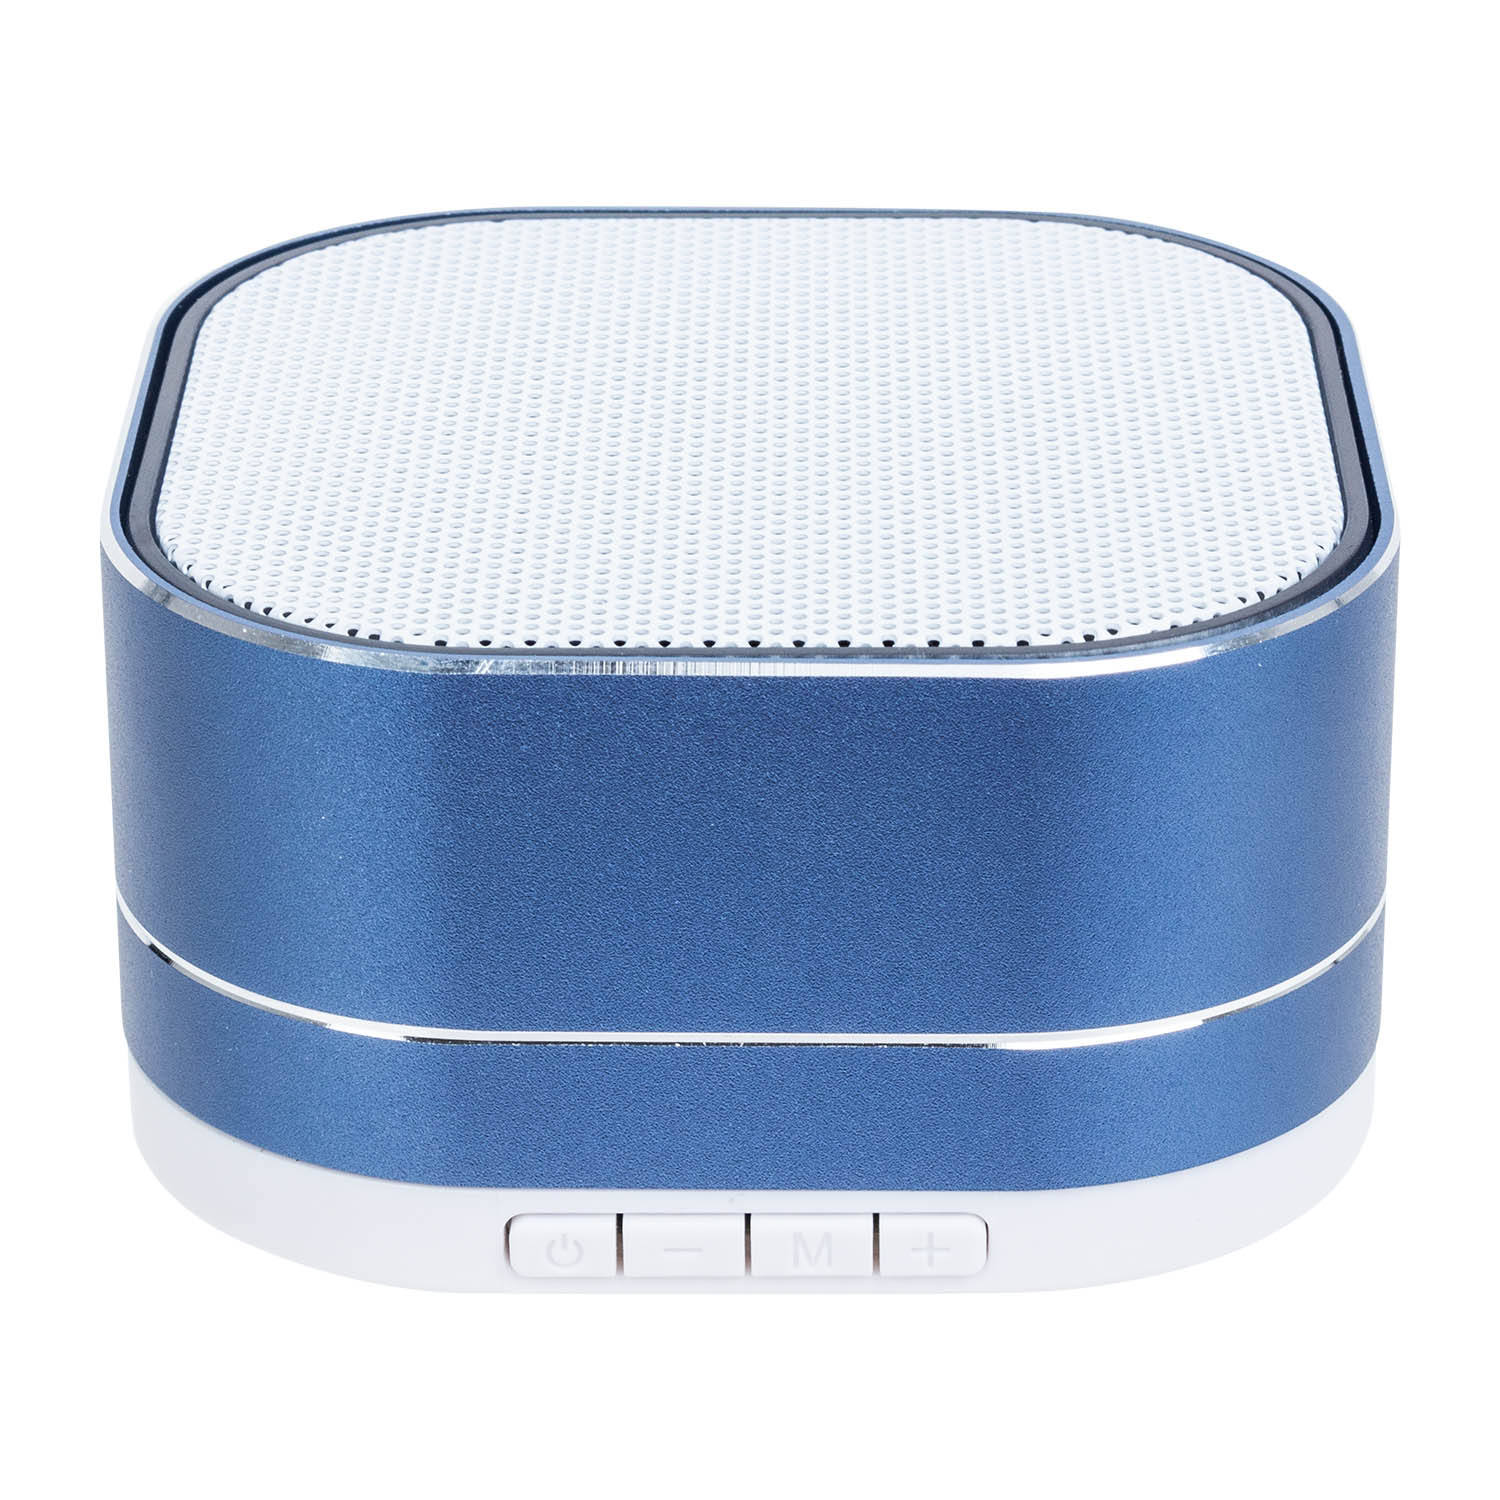 portable music player microphone metal mini blue tooth speaker